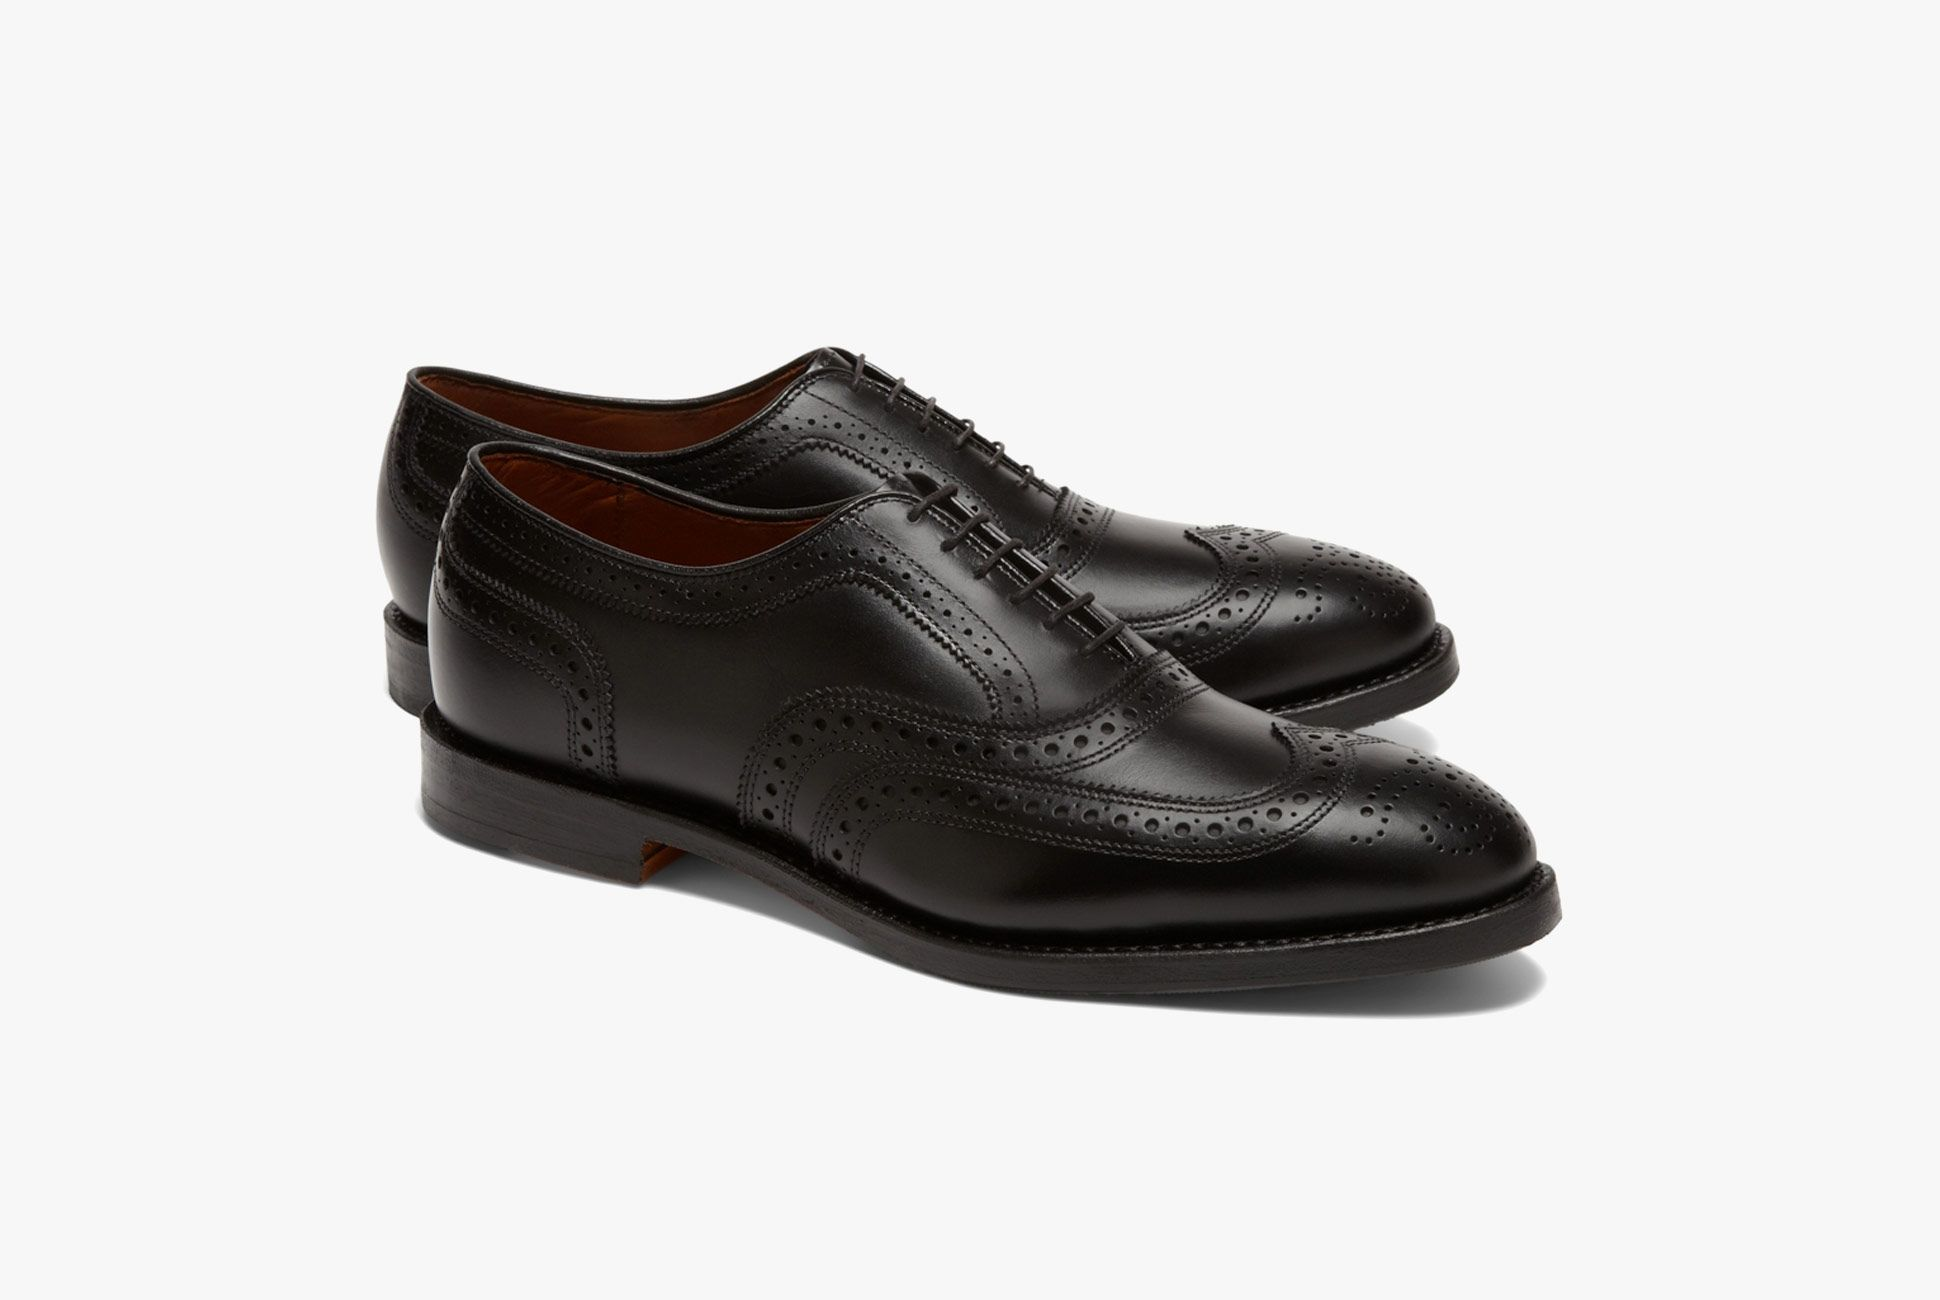 3 Classic Dress Shoes, Now on Sale at